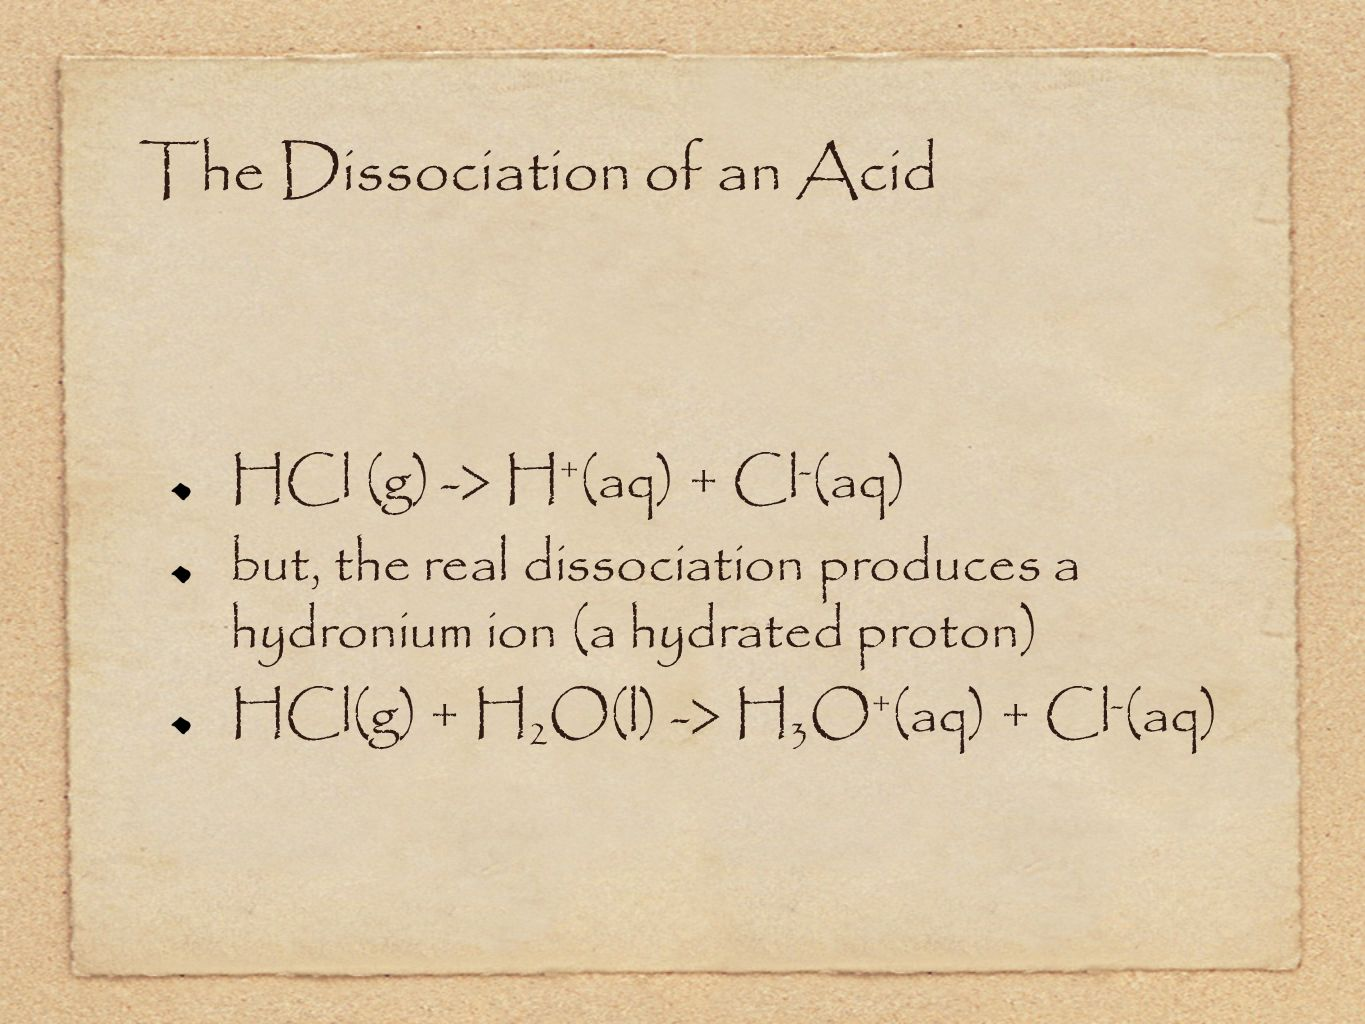 The Dissociation of an Acid HCl (g) -> H + (aq) + Cl - (aq) but, the real dissociation produces a hydronium ion (a hydrated proton) HCl(g) + H 2 O(l) -> H 3 O + (aq) + Cl - (aq)